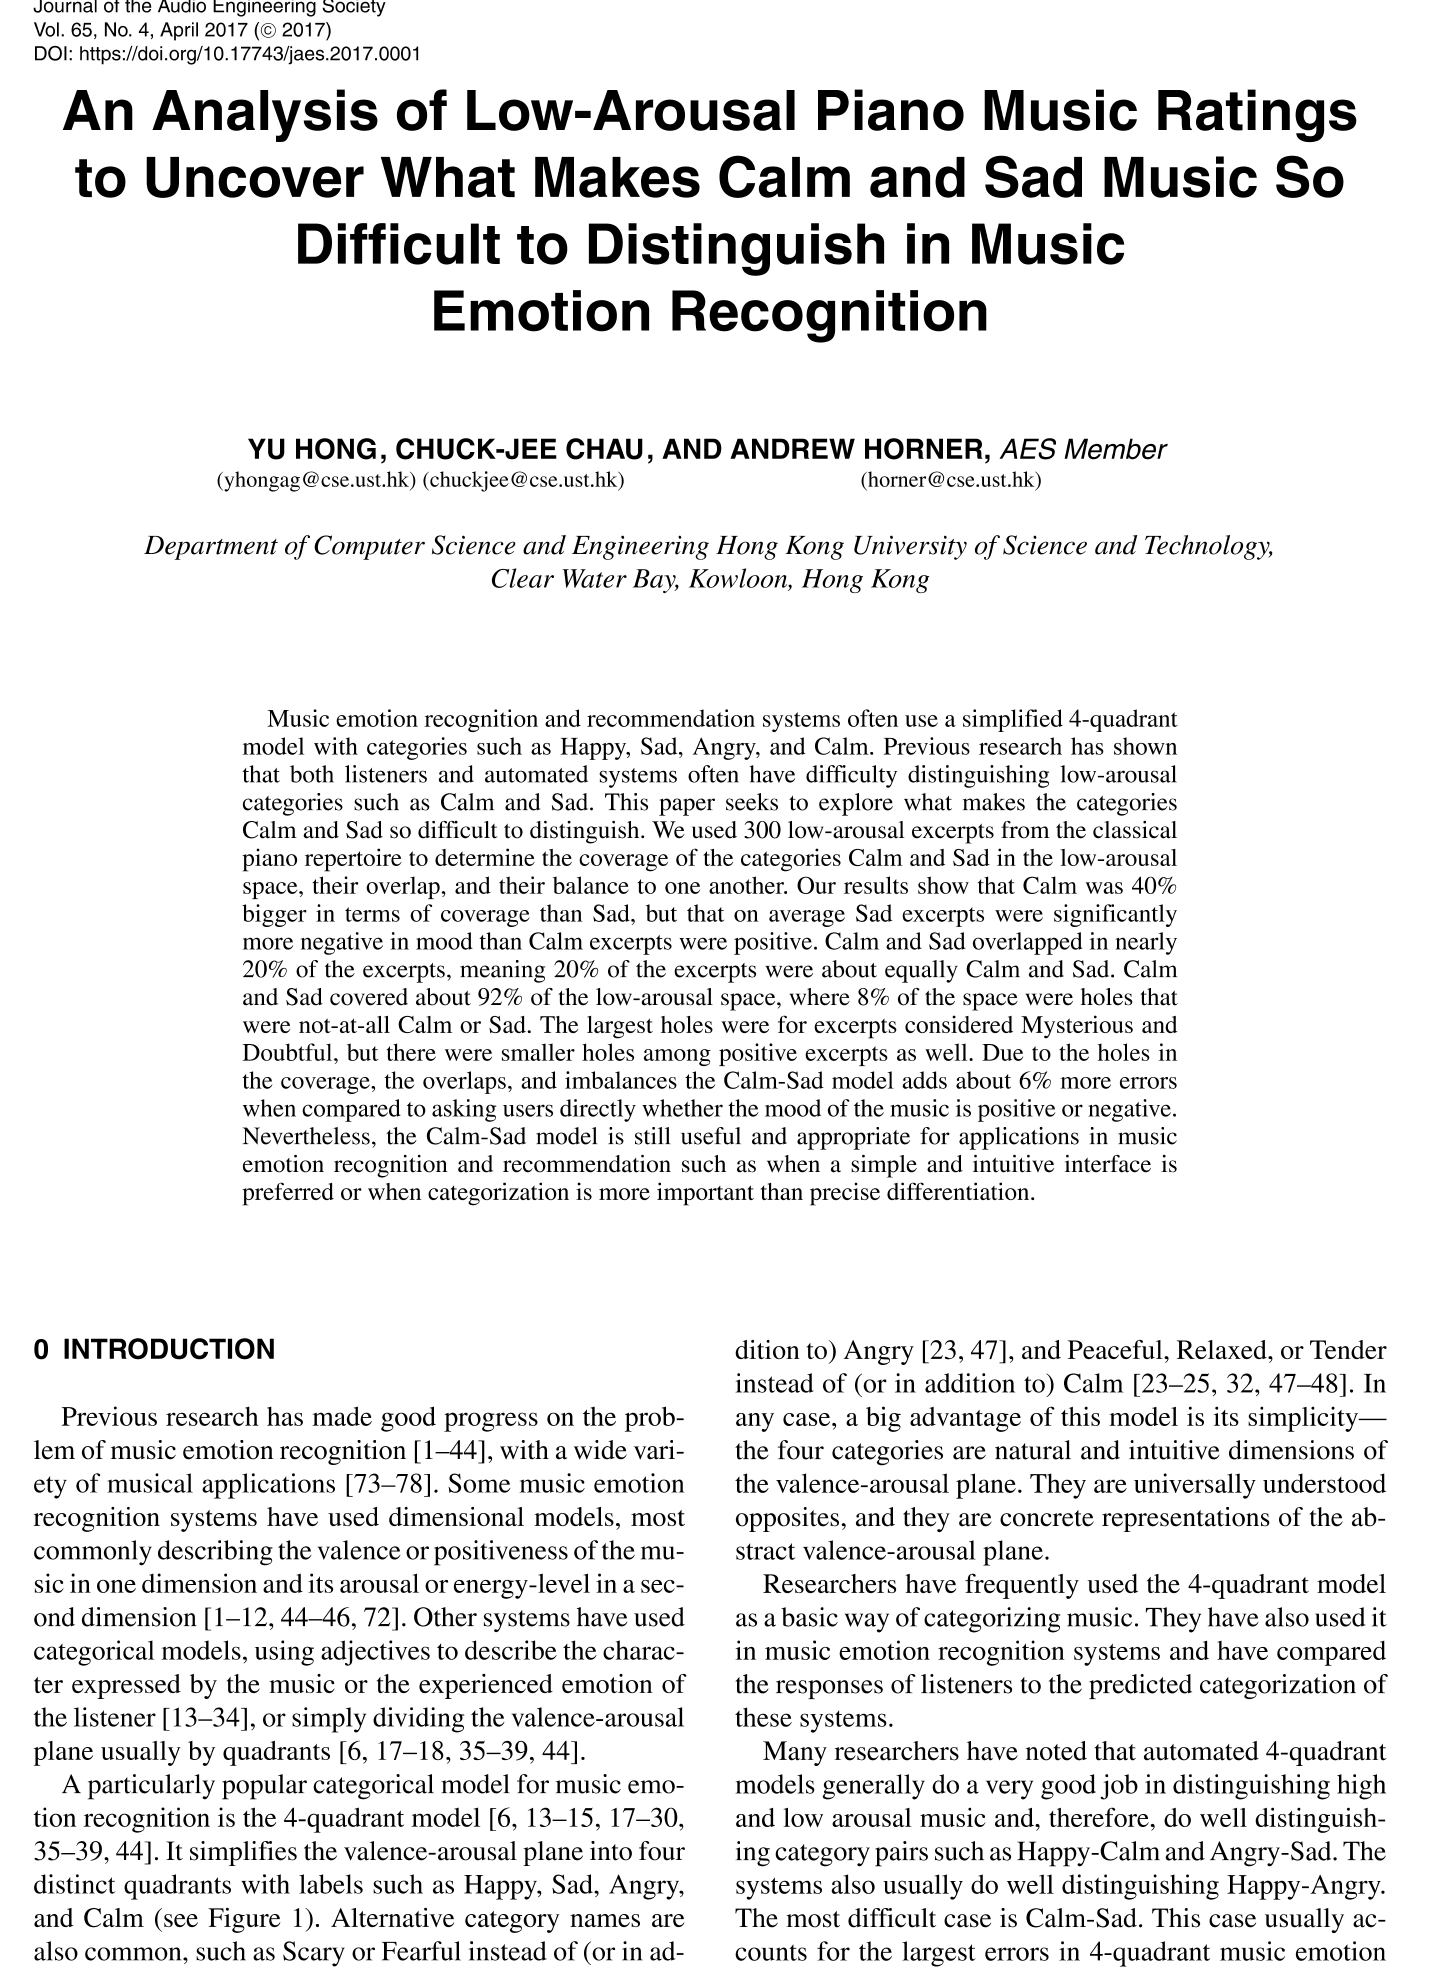 AES E-Library » An Analysis of Low-Arousal Piano Music